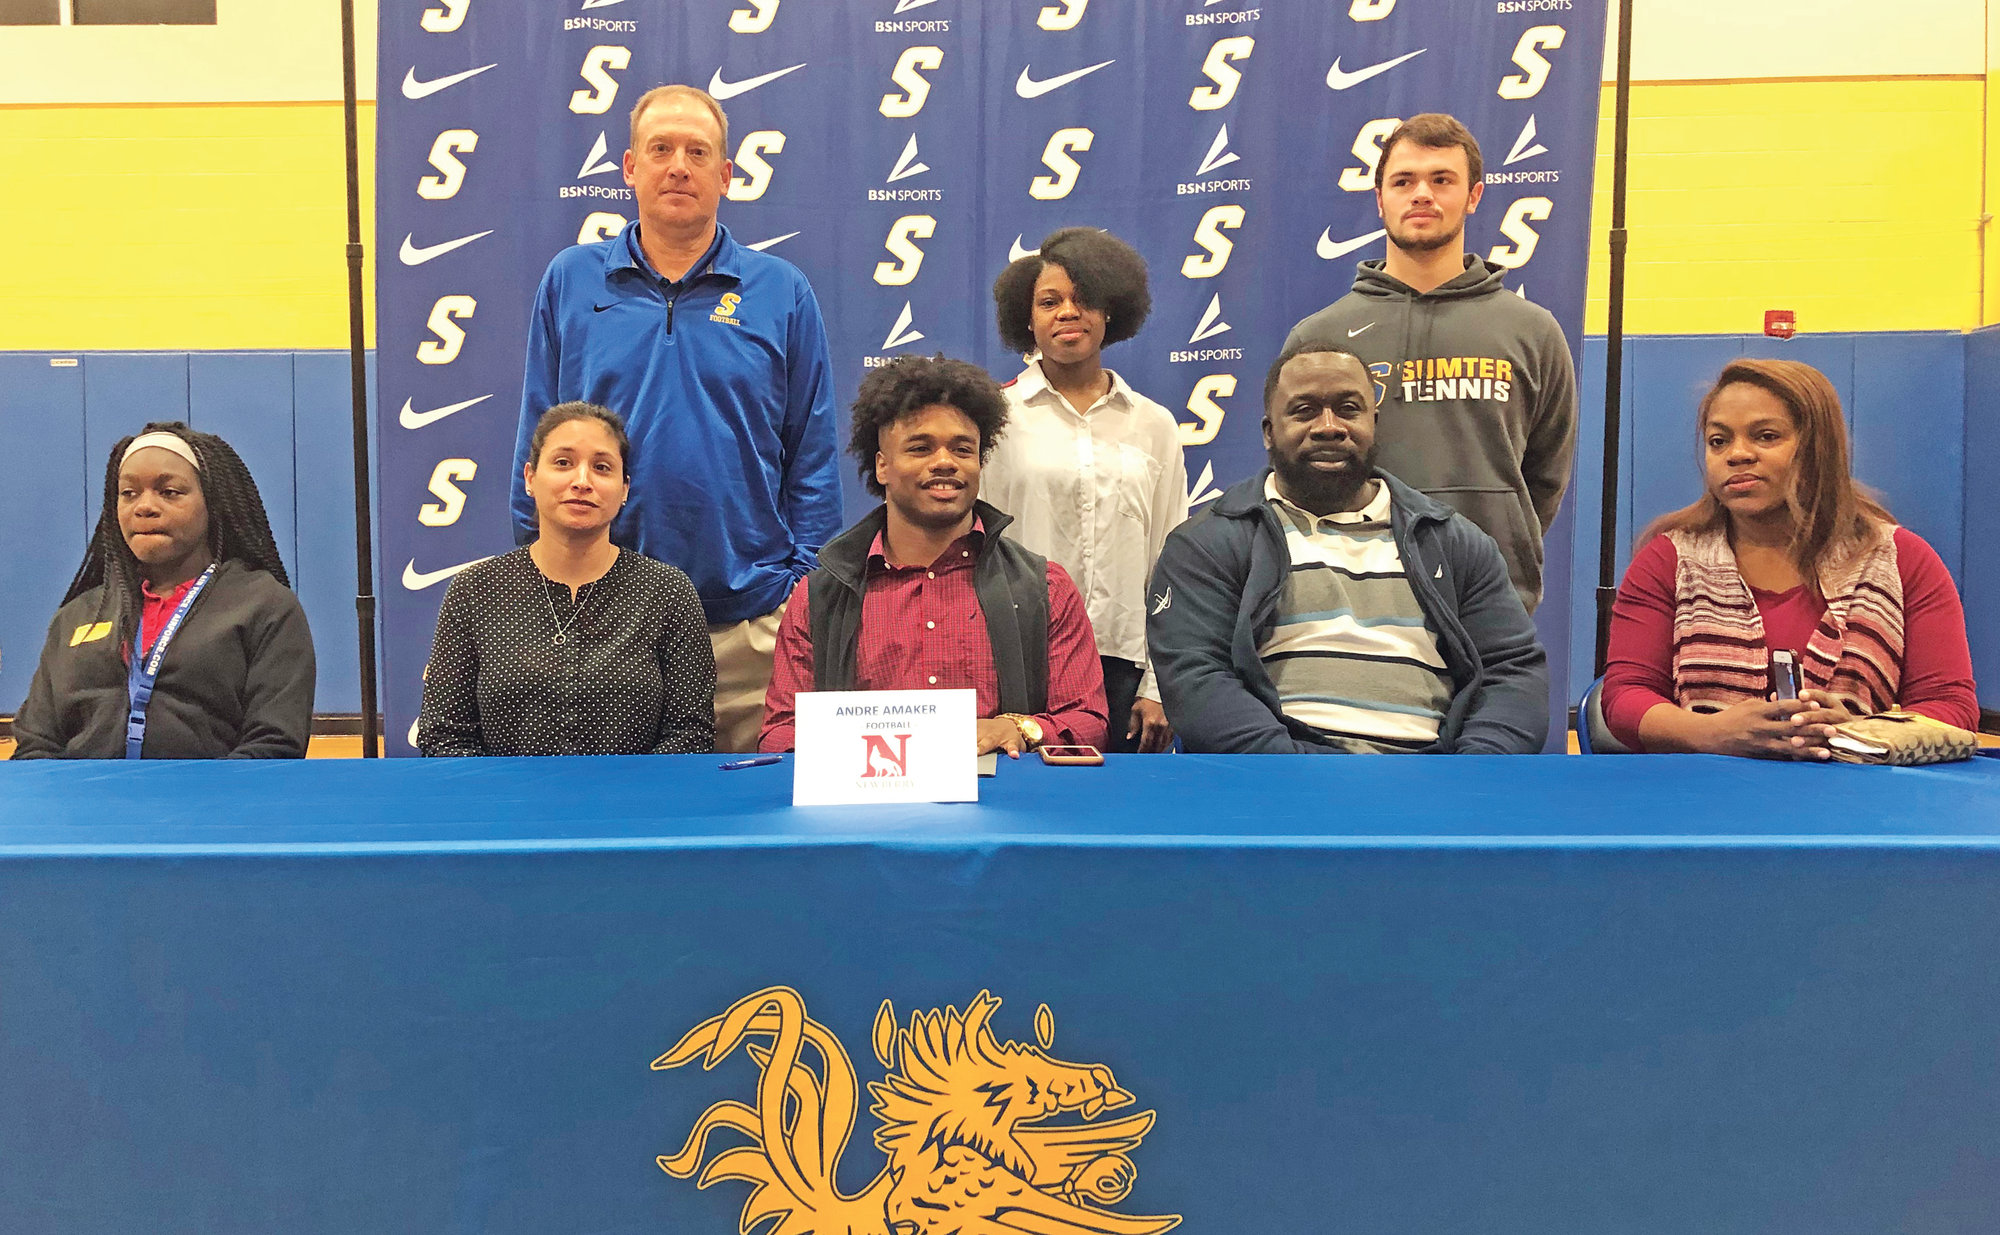 Sumter's Andre Amaker, middle, is flanked by family, best friend and coaches as he signs to play college football at Newberry College during a National Signing Day event at Sumter High on Wednesday.